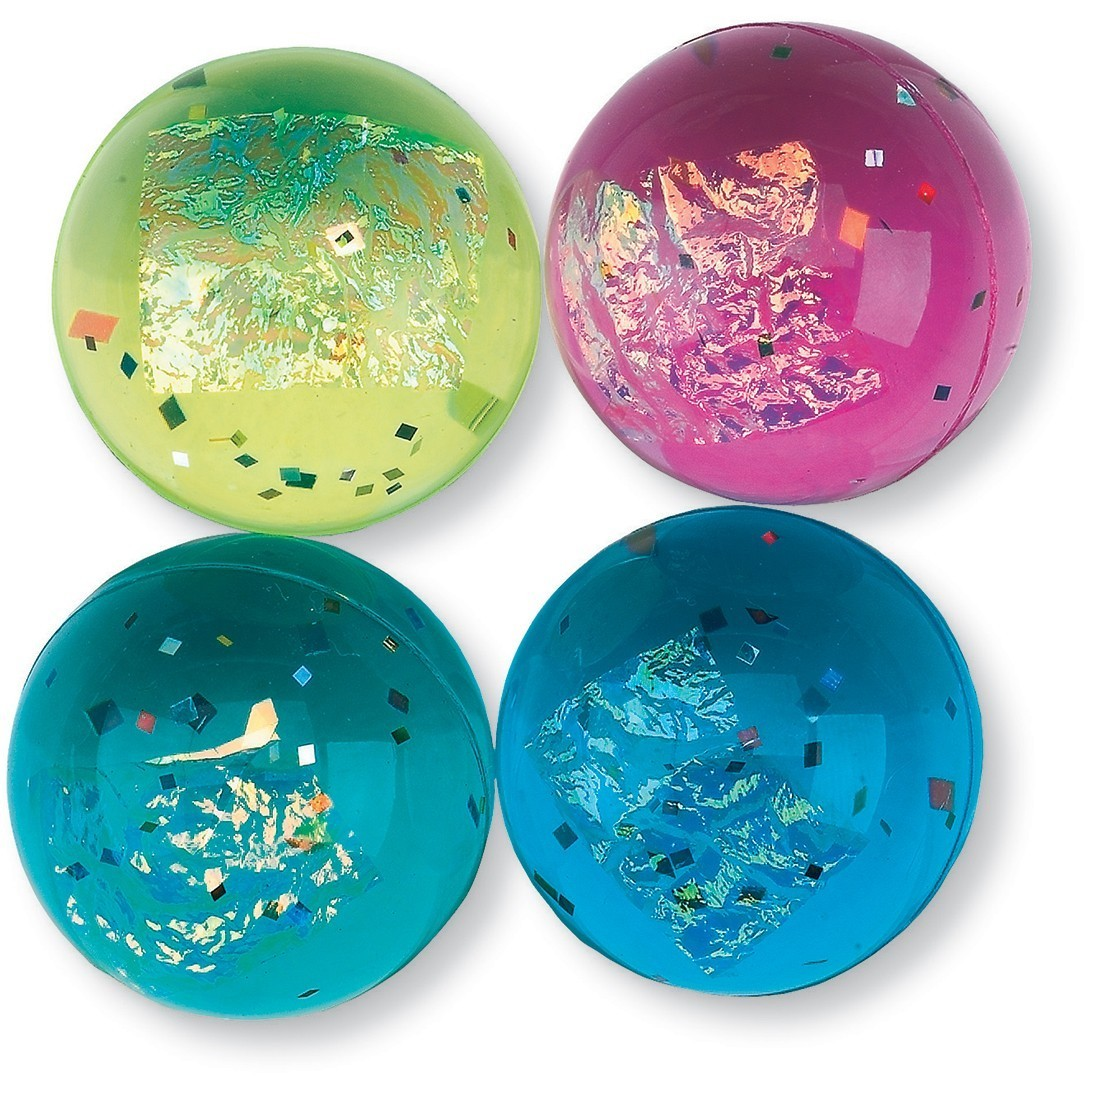 33mm Fire and Ice Glitter Bouncing Balls [image]